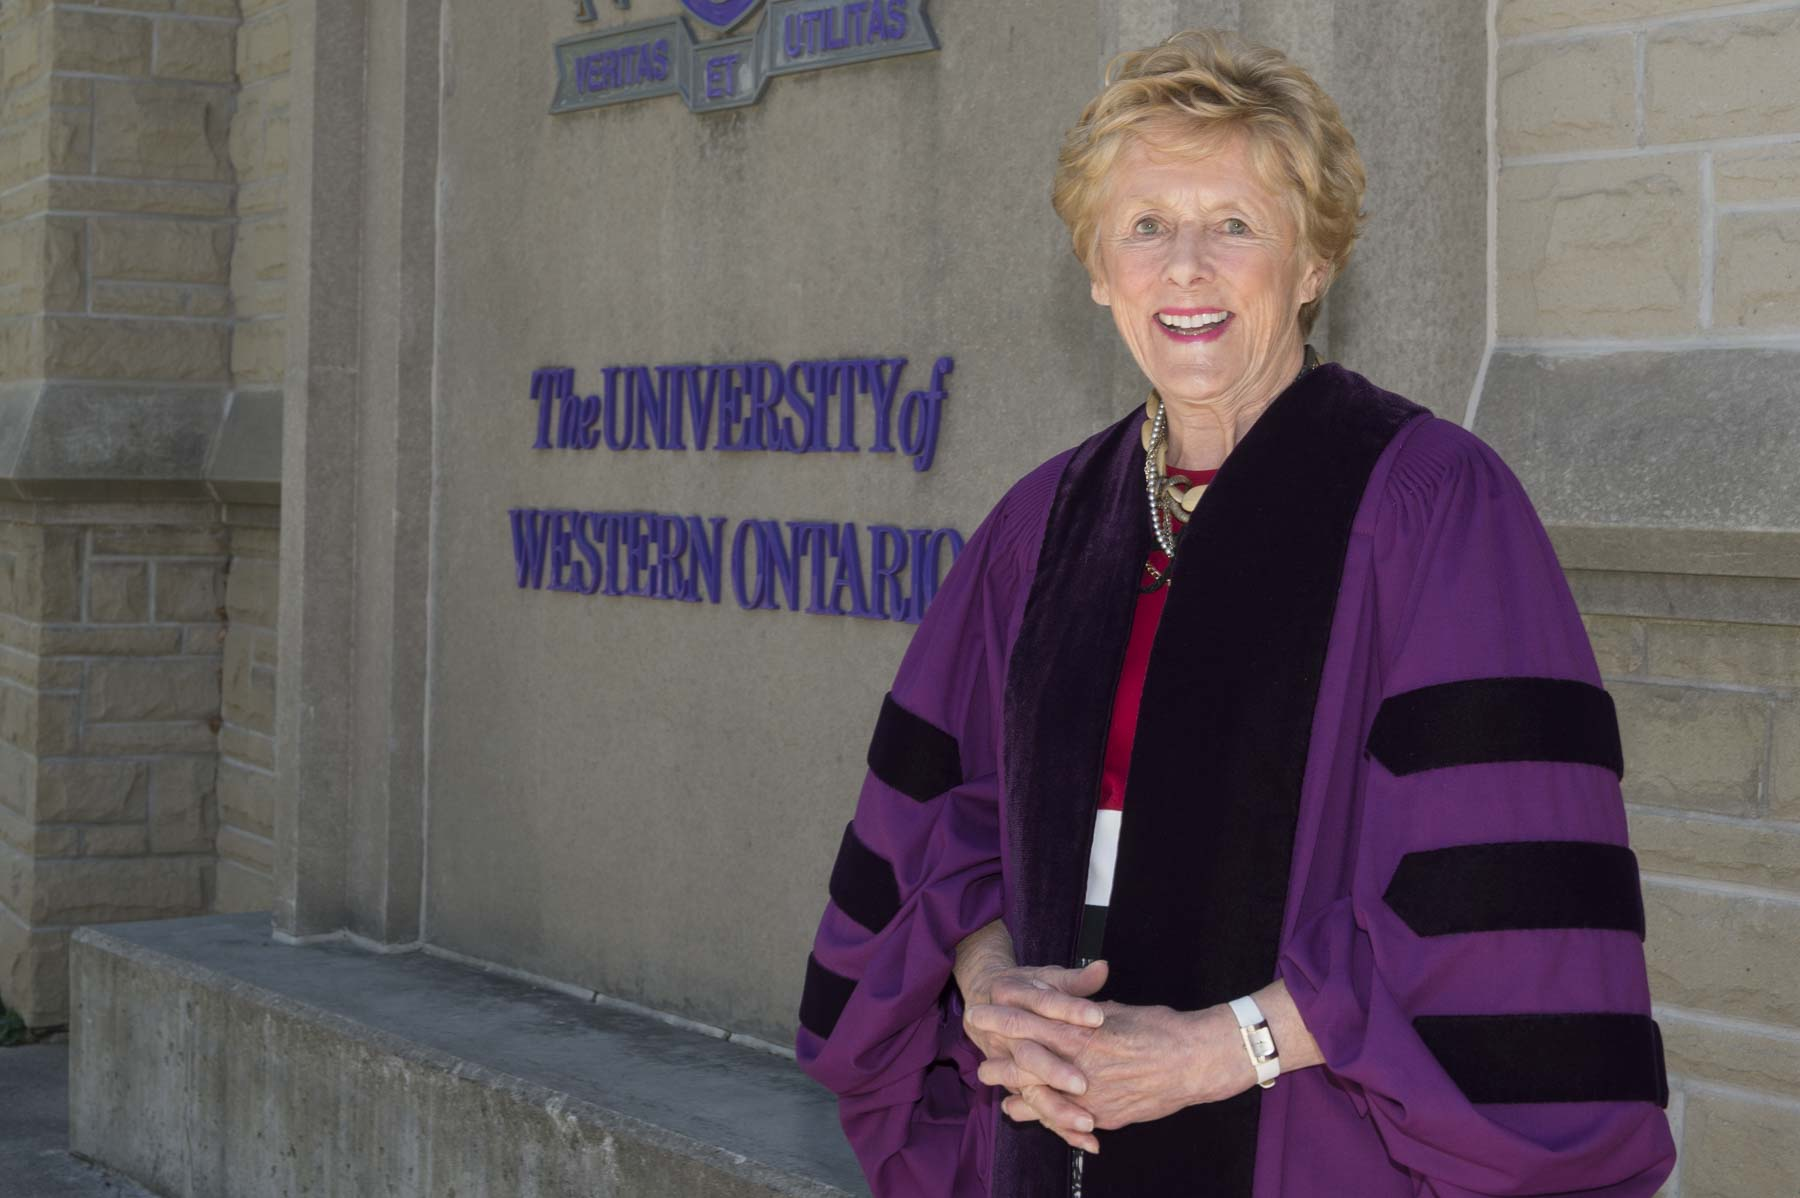 Her Excellency Sharon Johnston received the degree of Doctor of Laws, honoris causa, from Western University, in London, Ontario.